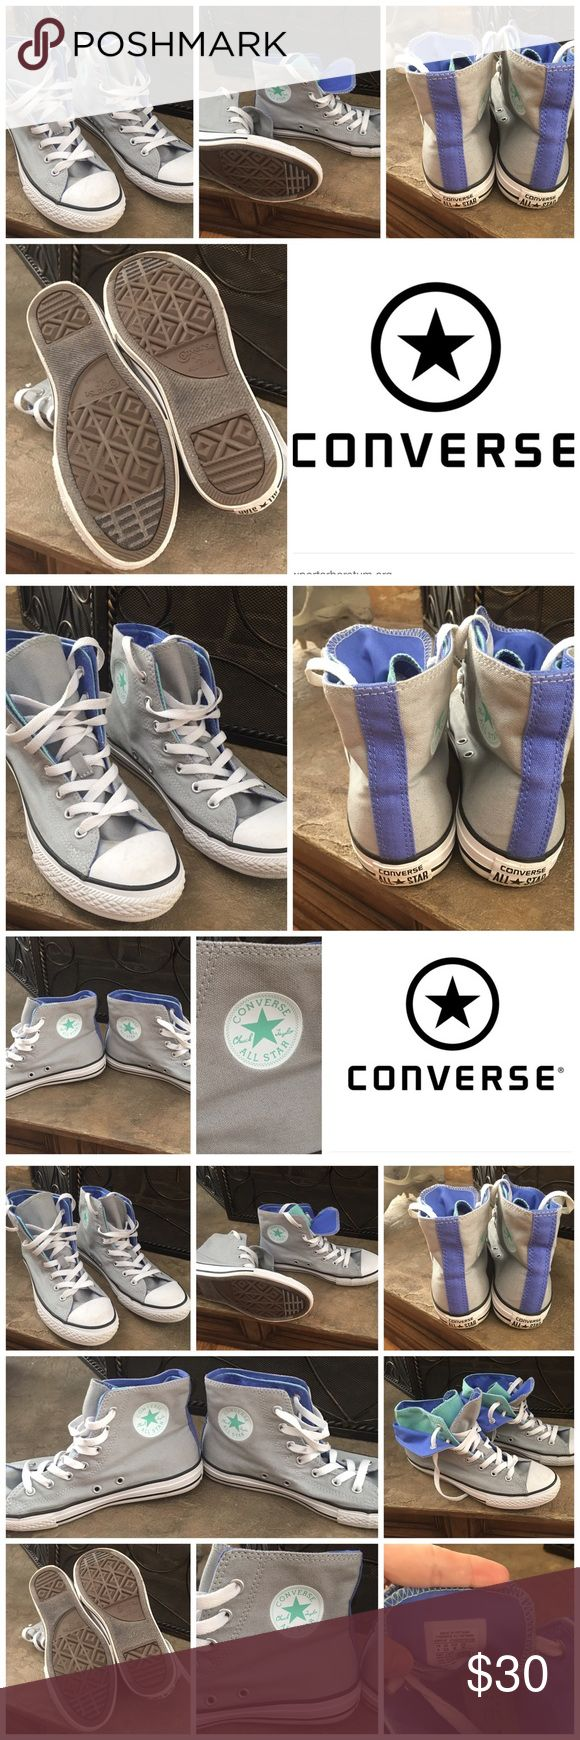 Converse Chuck Taylor Sneakers Converse Chuck Taylor Sneakers, size 4. Great pre owned condition. See pictures. Converse Shoes Sneakers